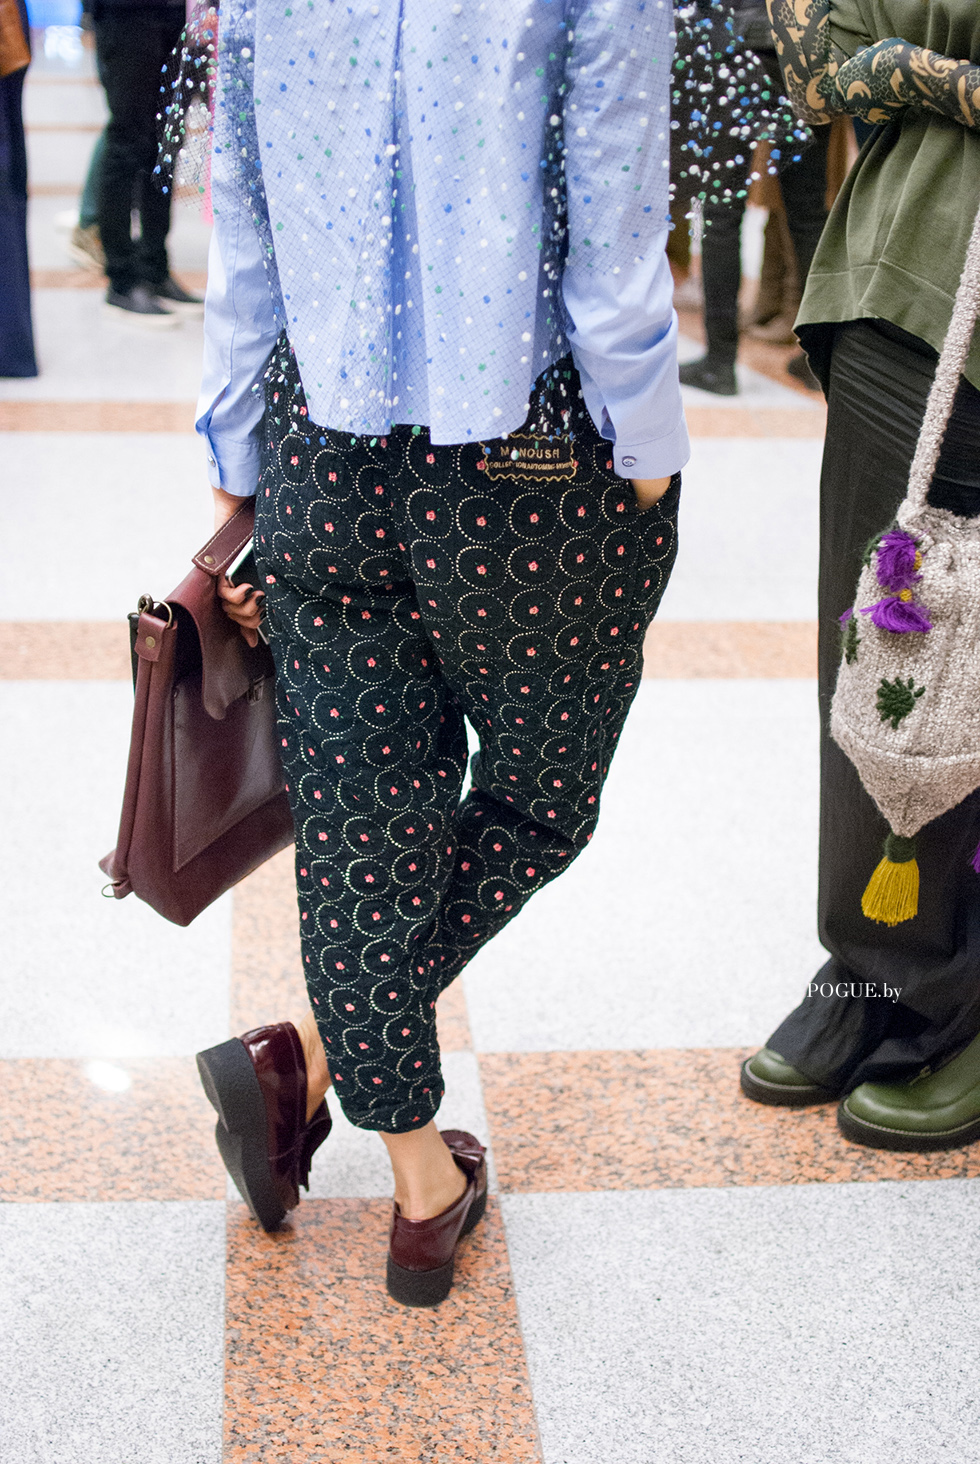 fashion_week_fiest_day_guest_detail_pogueby19